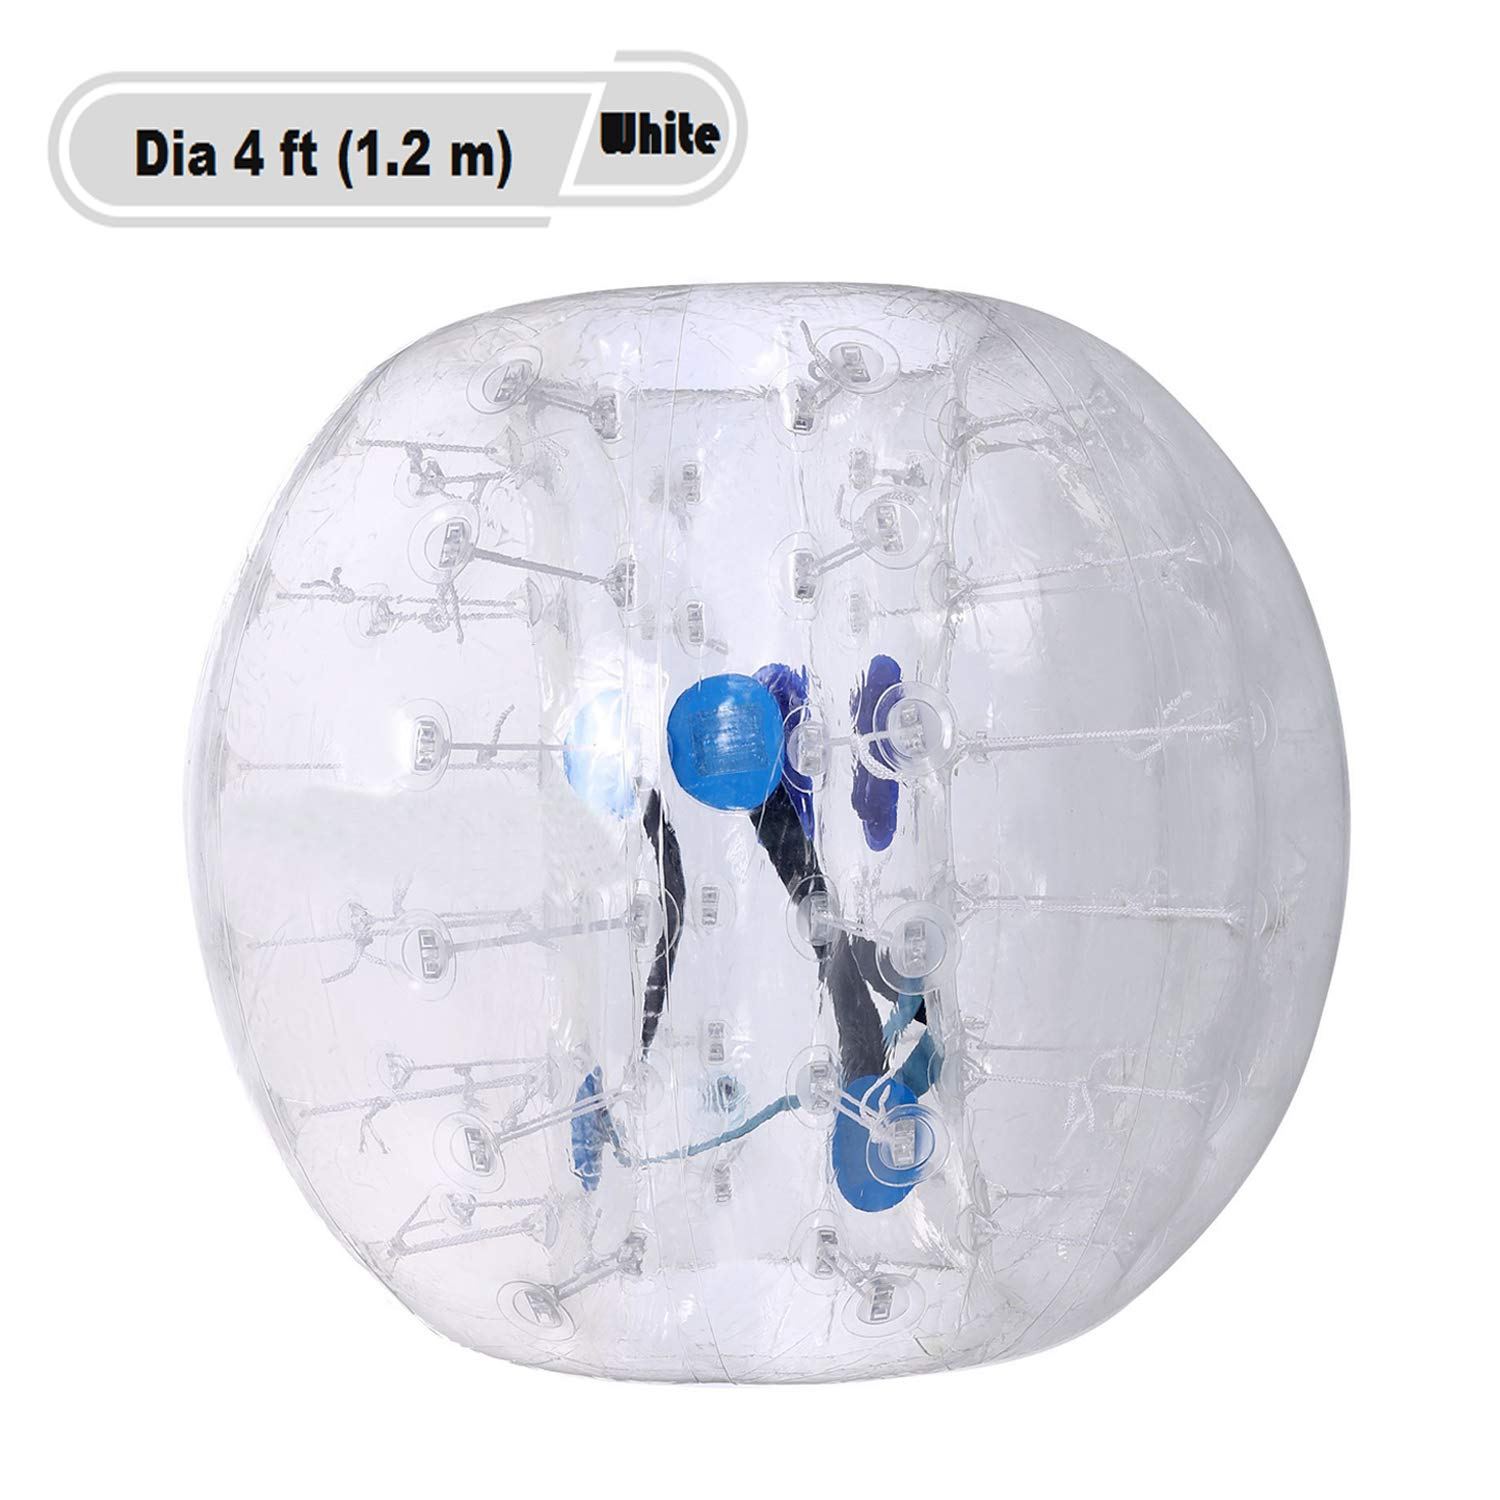 Yiilove Inflatable Bumper Ball 4 ft/5 ft(1.2/1.5 m) Bubble Soccer Ball Transparent Material Human Knocker Ballfor Adults and Kids (Dia 4 ft (1.2 m)-White)